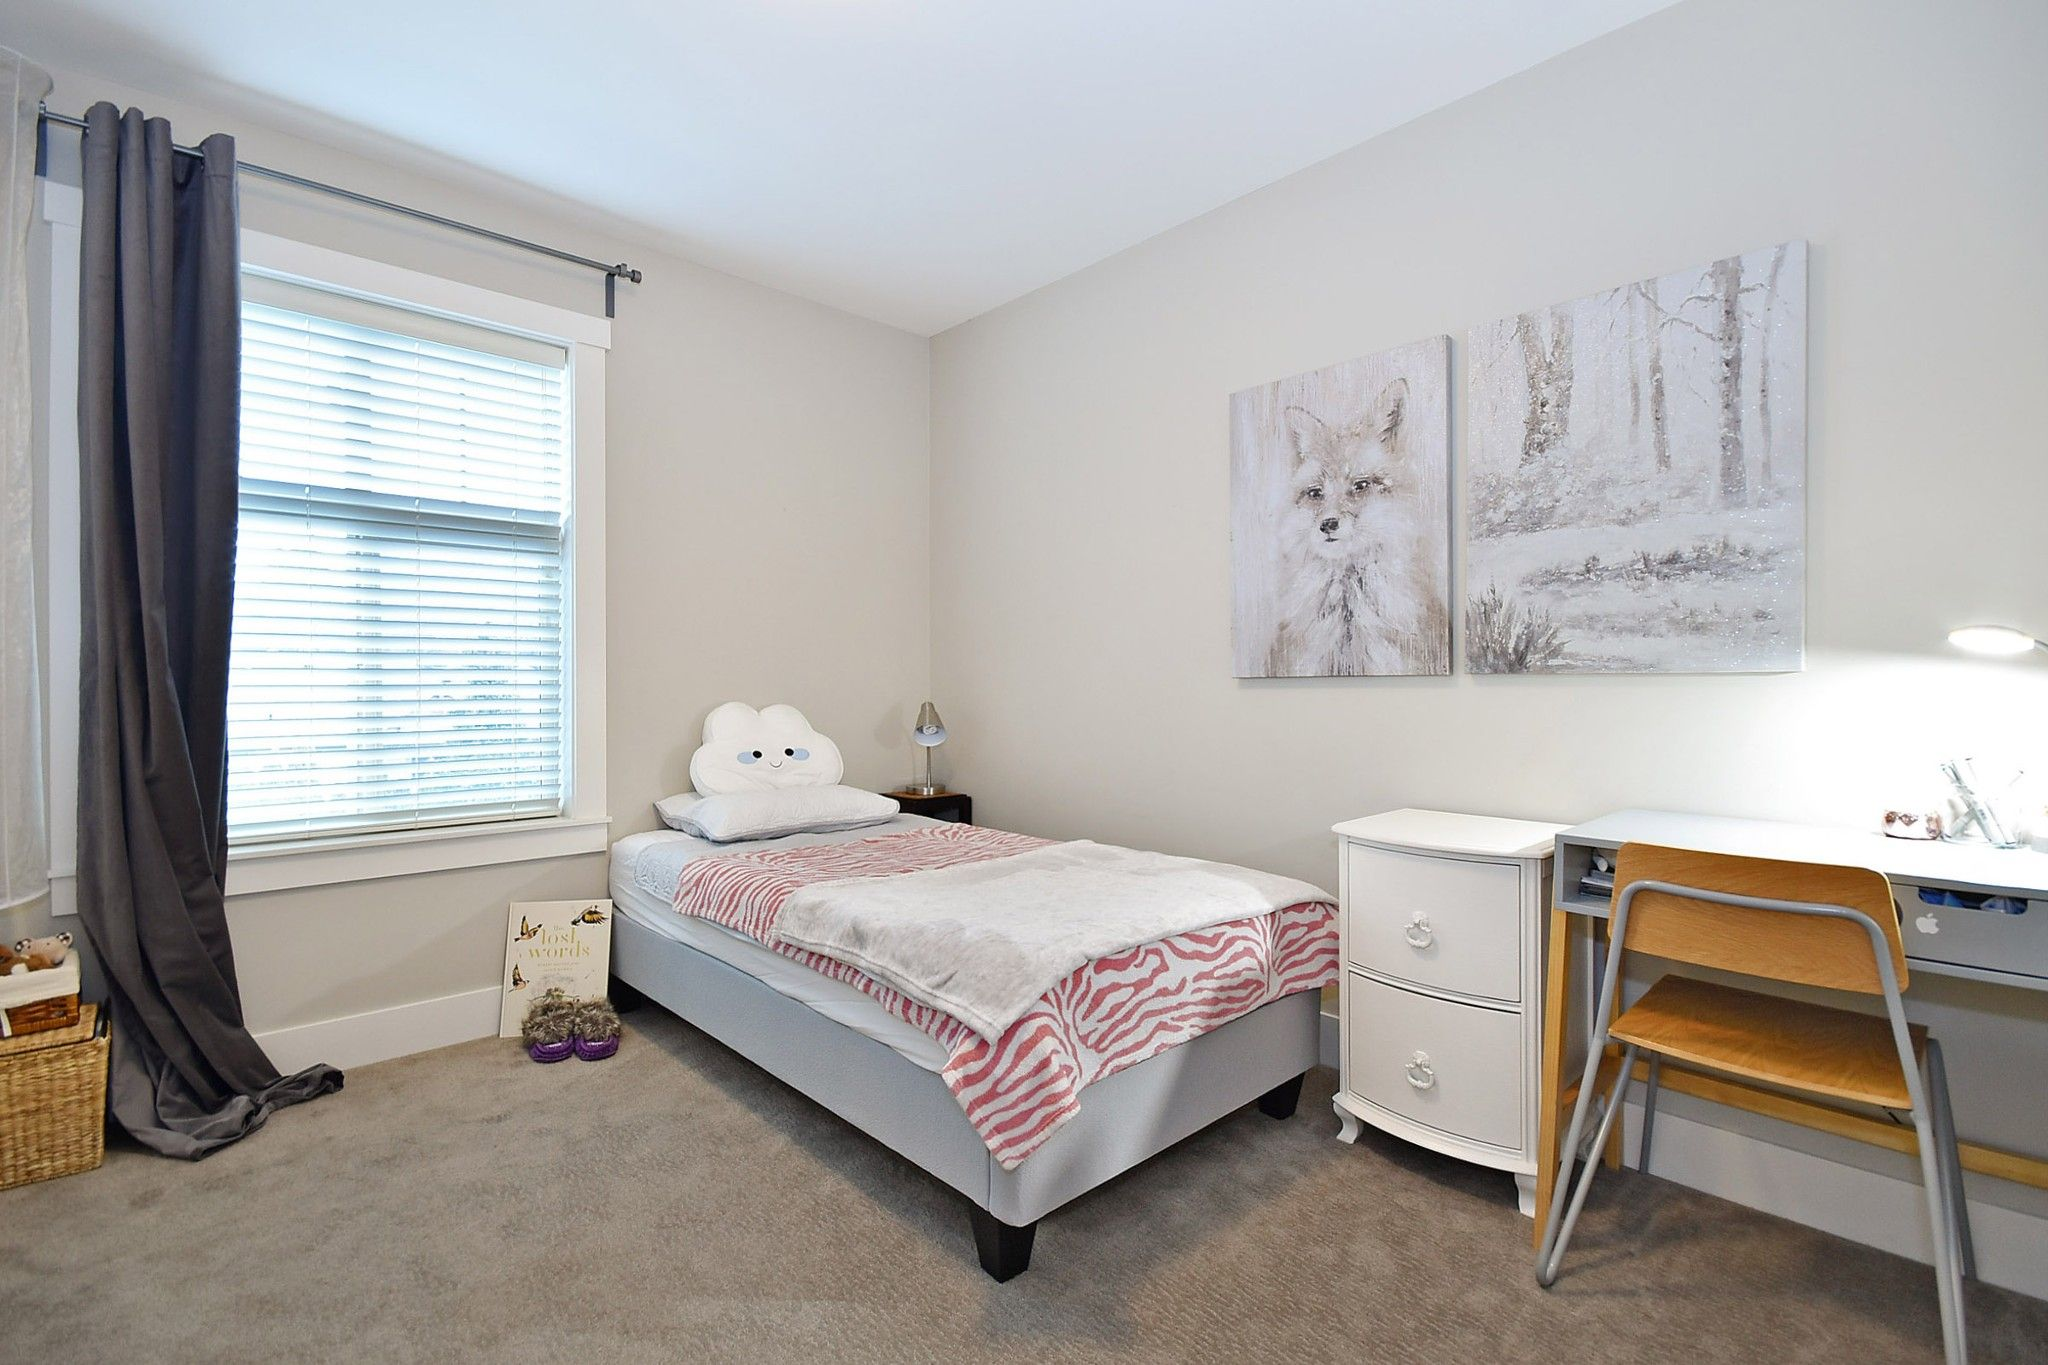 """Photo 13: Photos: 4 35298 MARSHALL Road in Abbotsford: Abbotsford East Townhouse for sale in """"Eagles Gate"""" : MLS®# R2434344"""